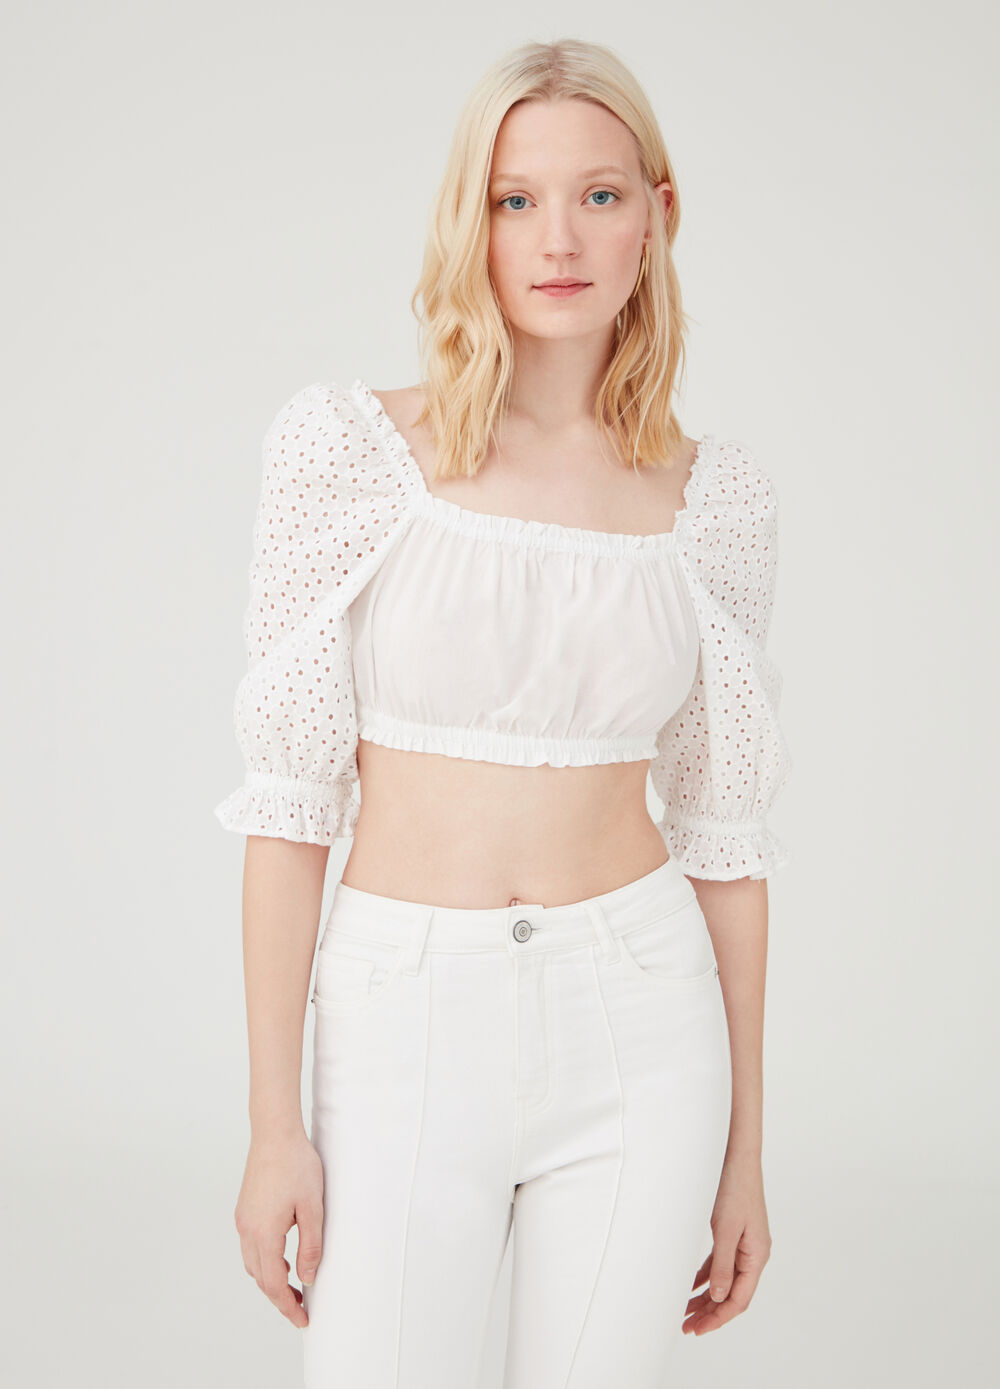 Crop shirt with openwork sleeves